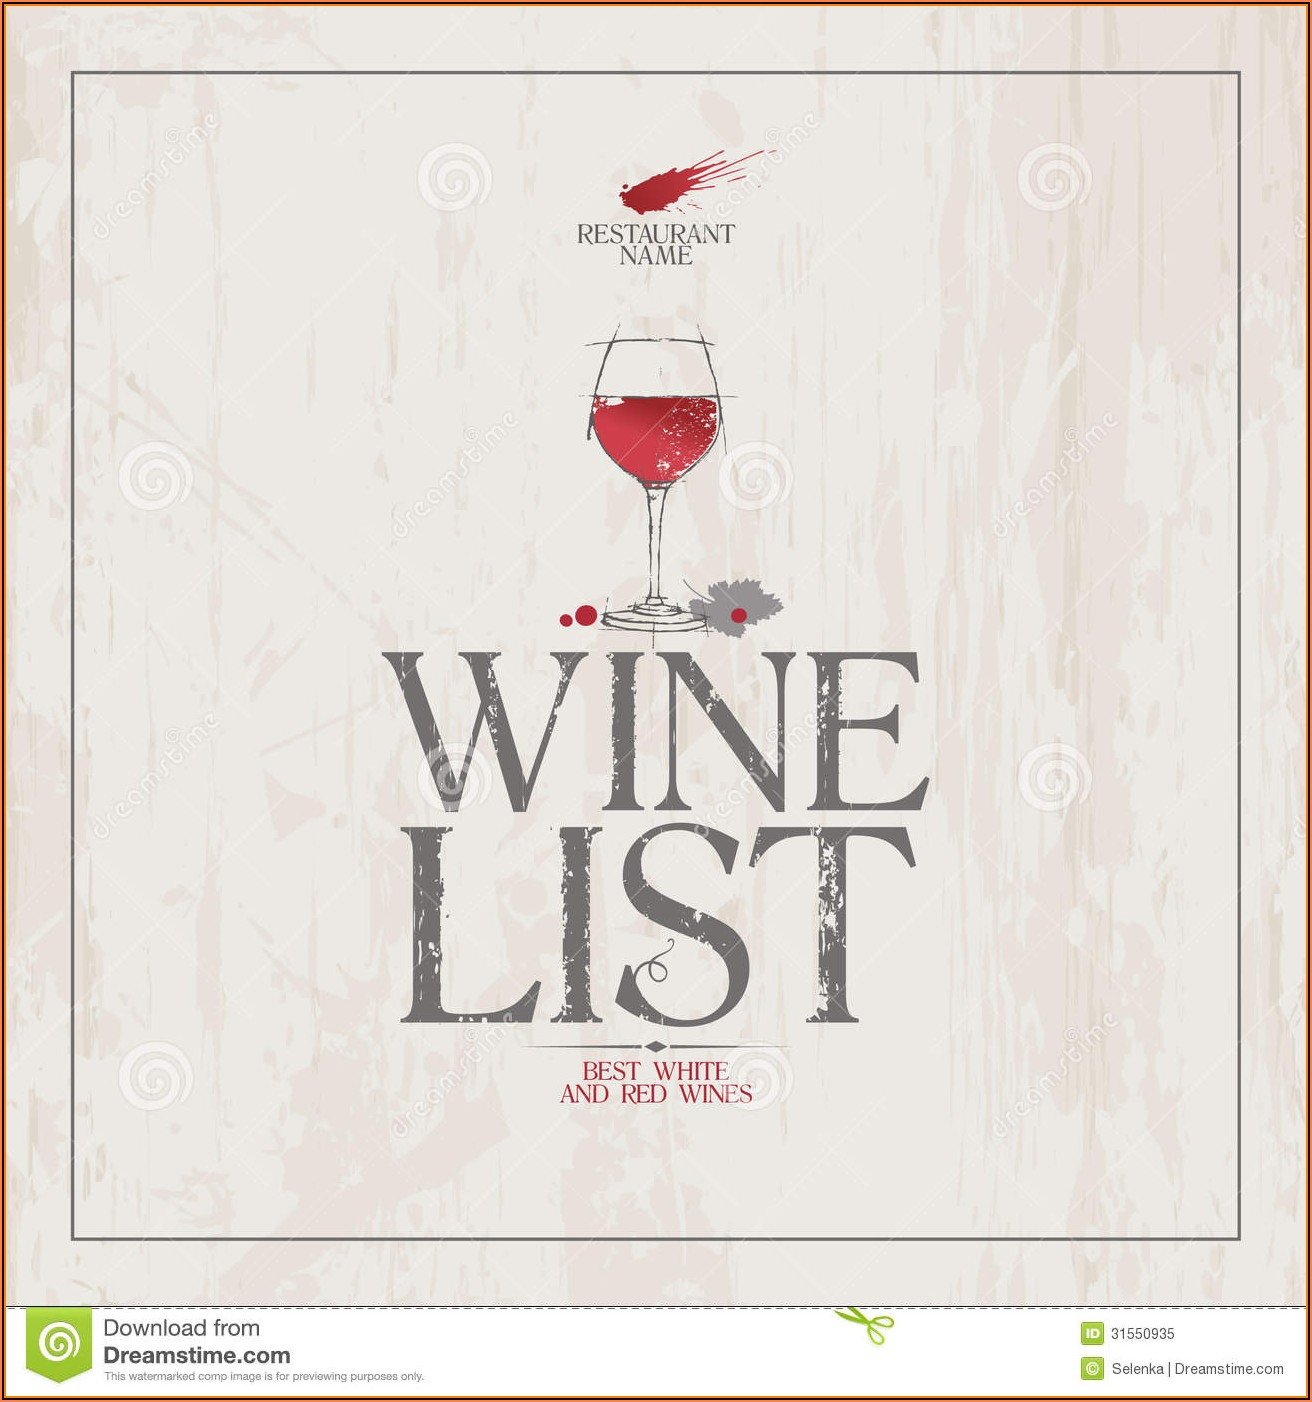 Free Wine Menu Template Downloads